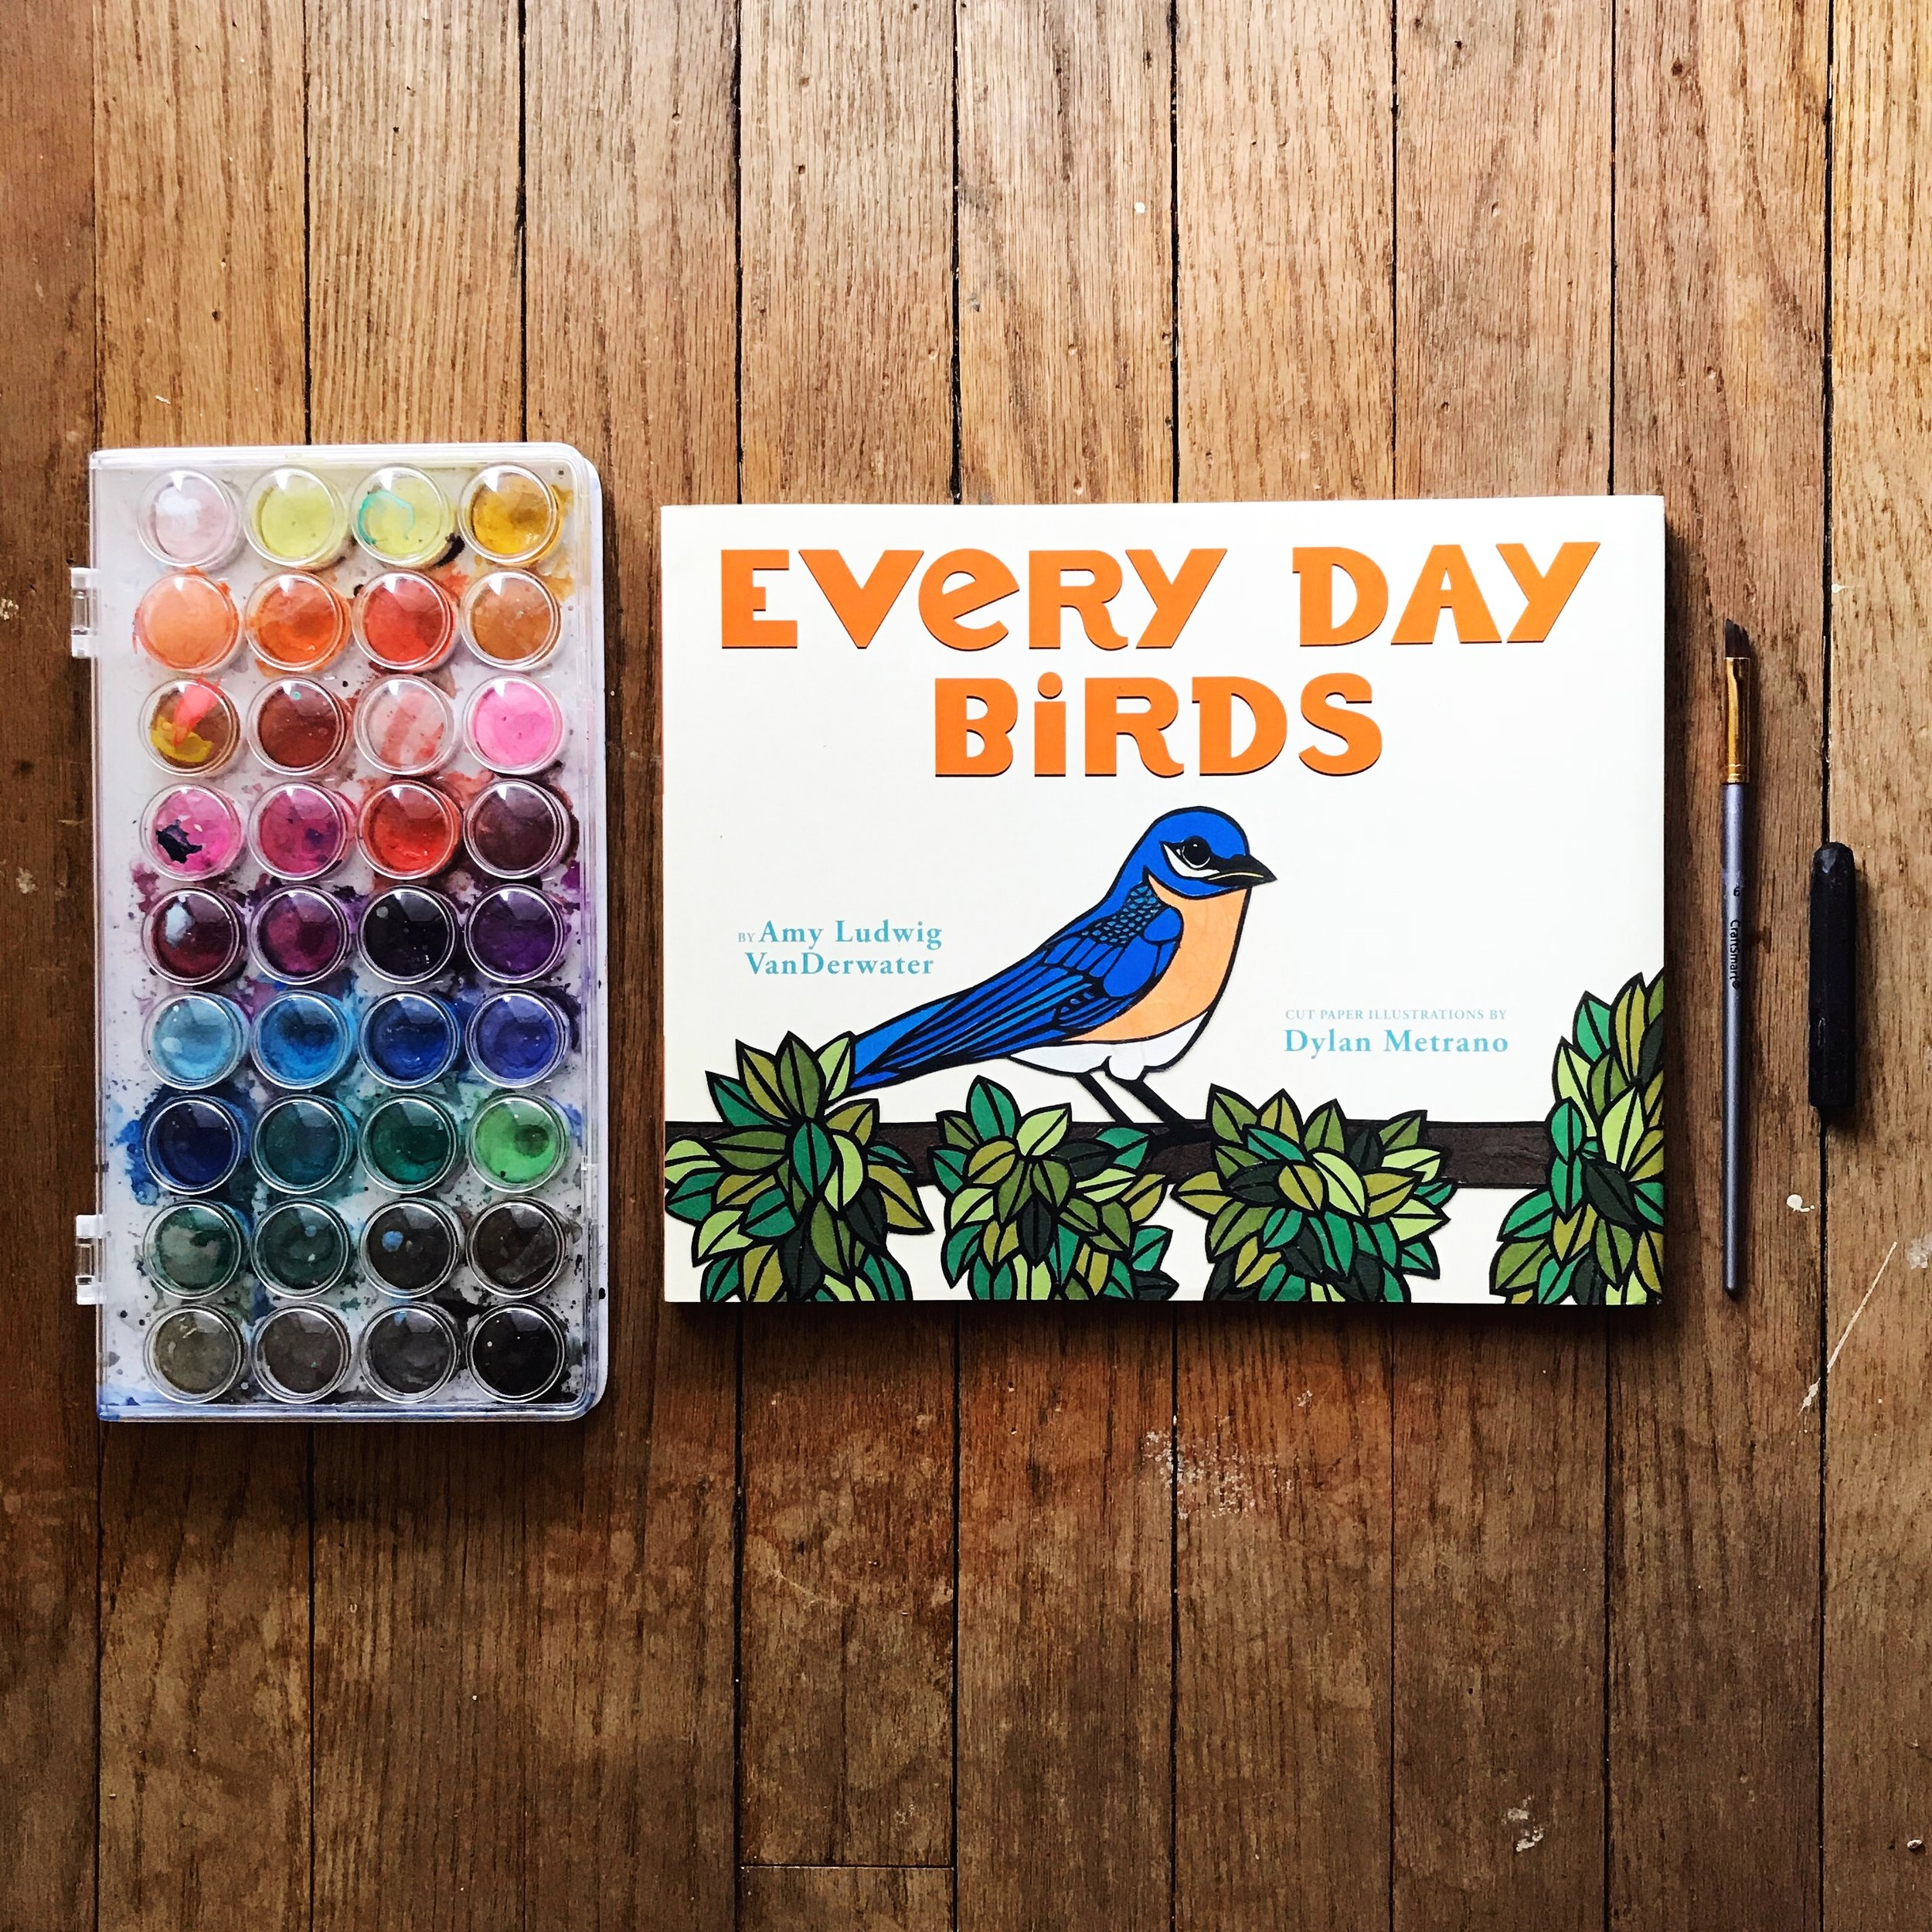 Every Day Birds  by Amy Ludwig VanDerwater illustrated by Dylan Metrano